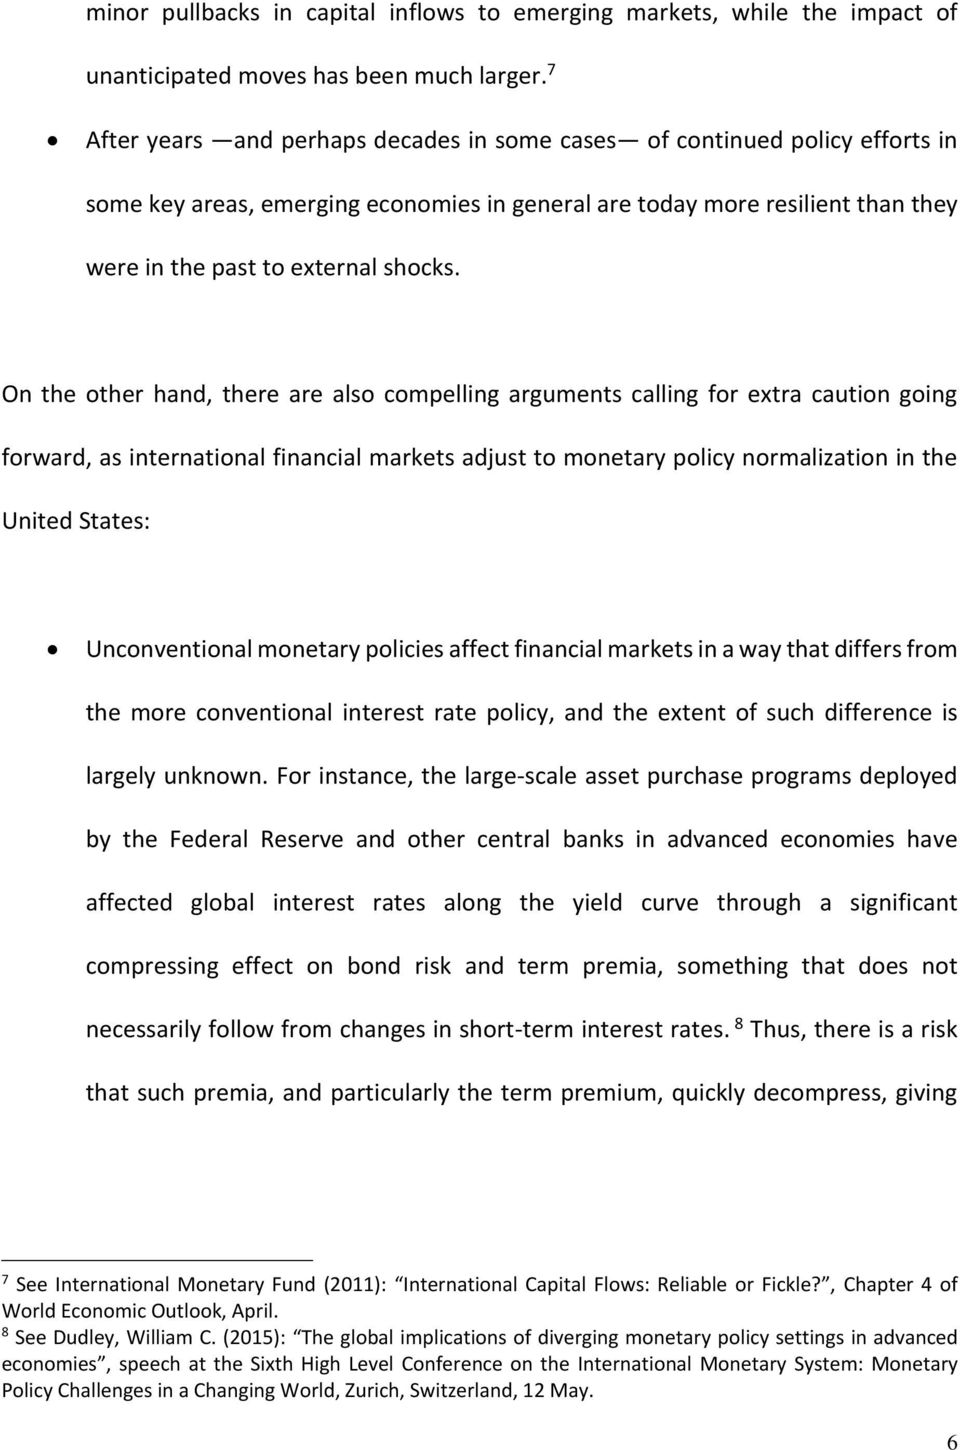 On the other hand, there are also compelling arguments calling for extra caution going forward, as international financial markets adjust to monetary policy normalization in the United States: